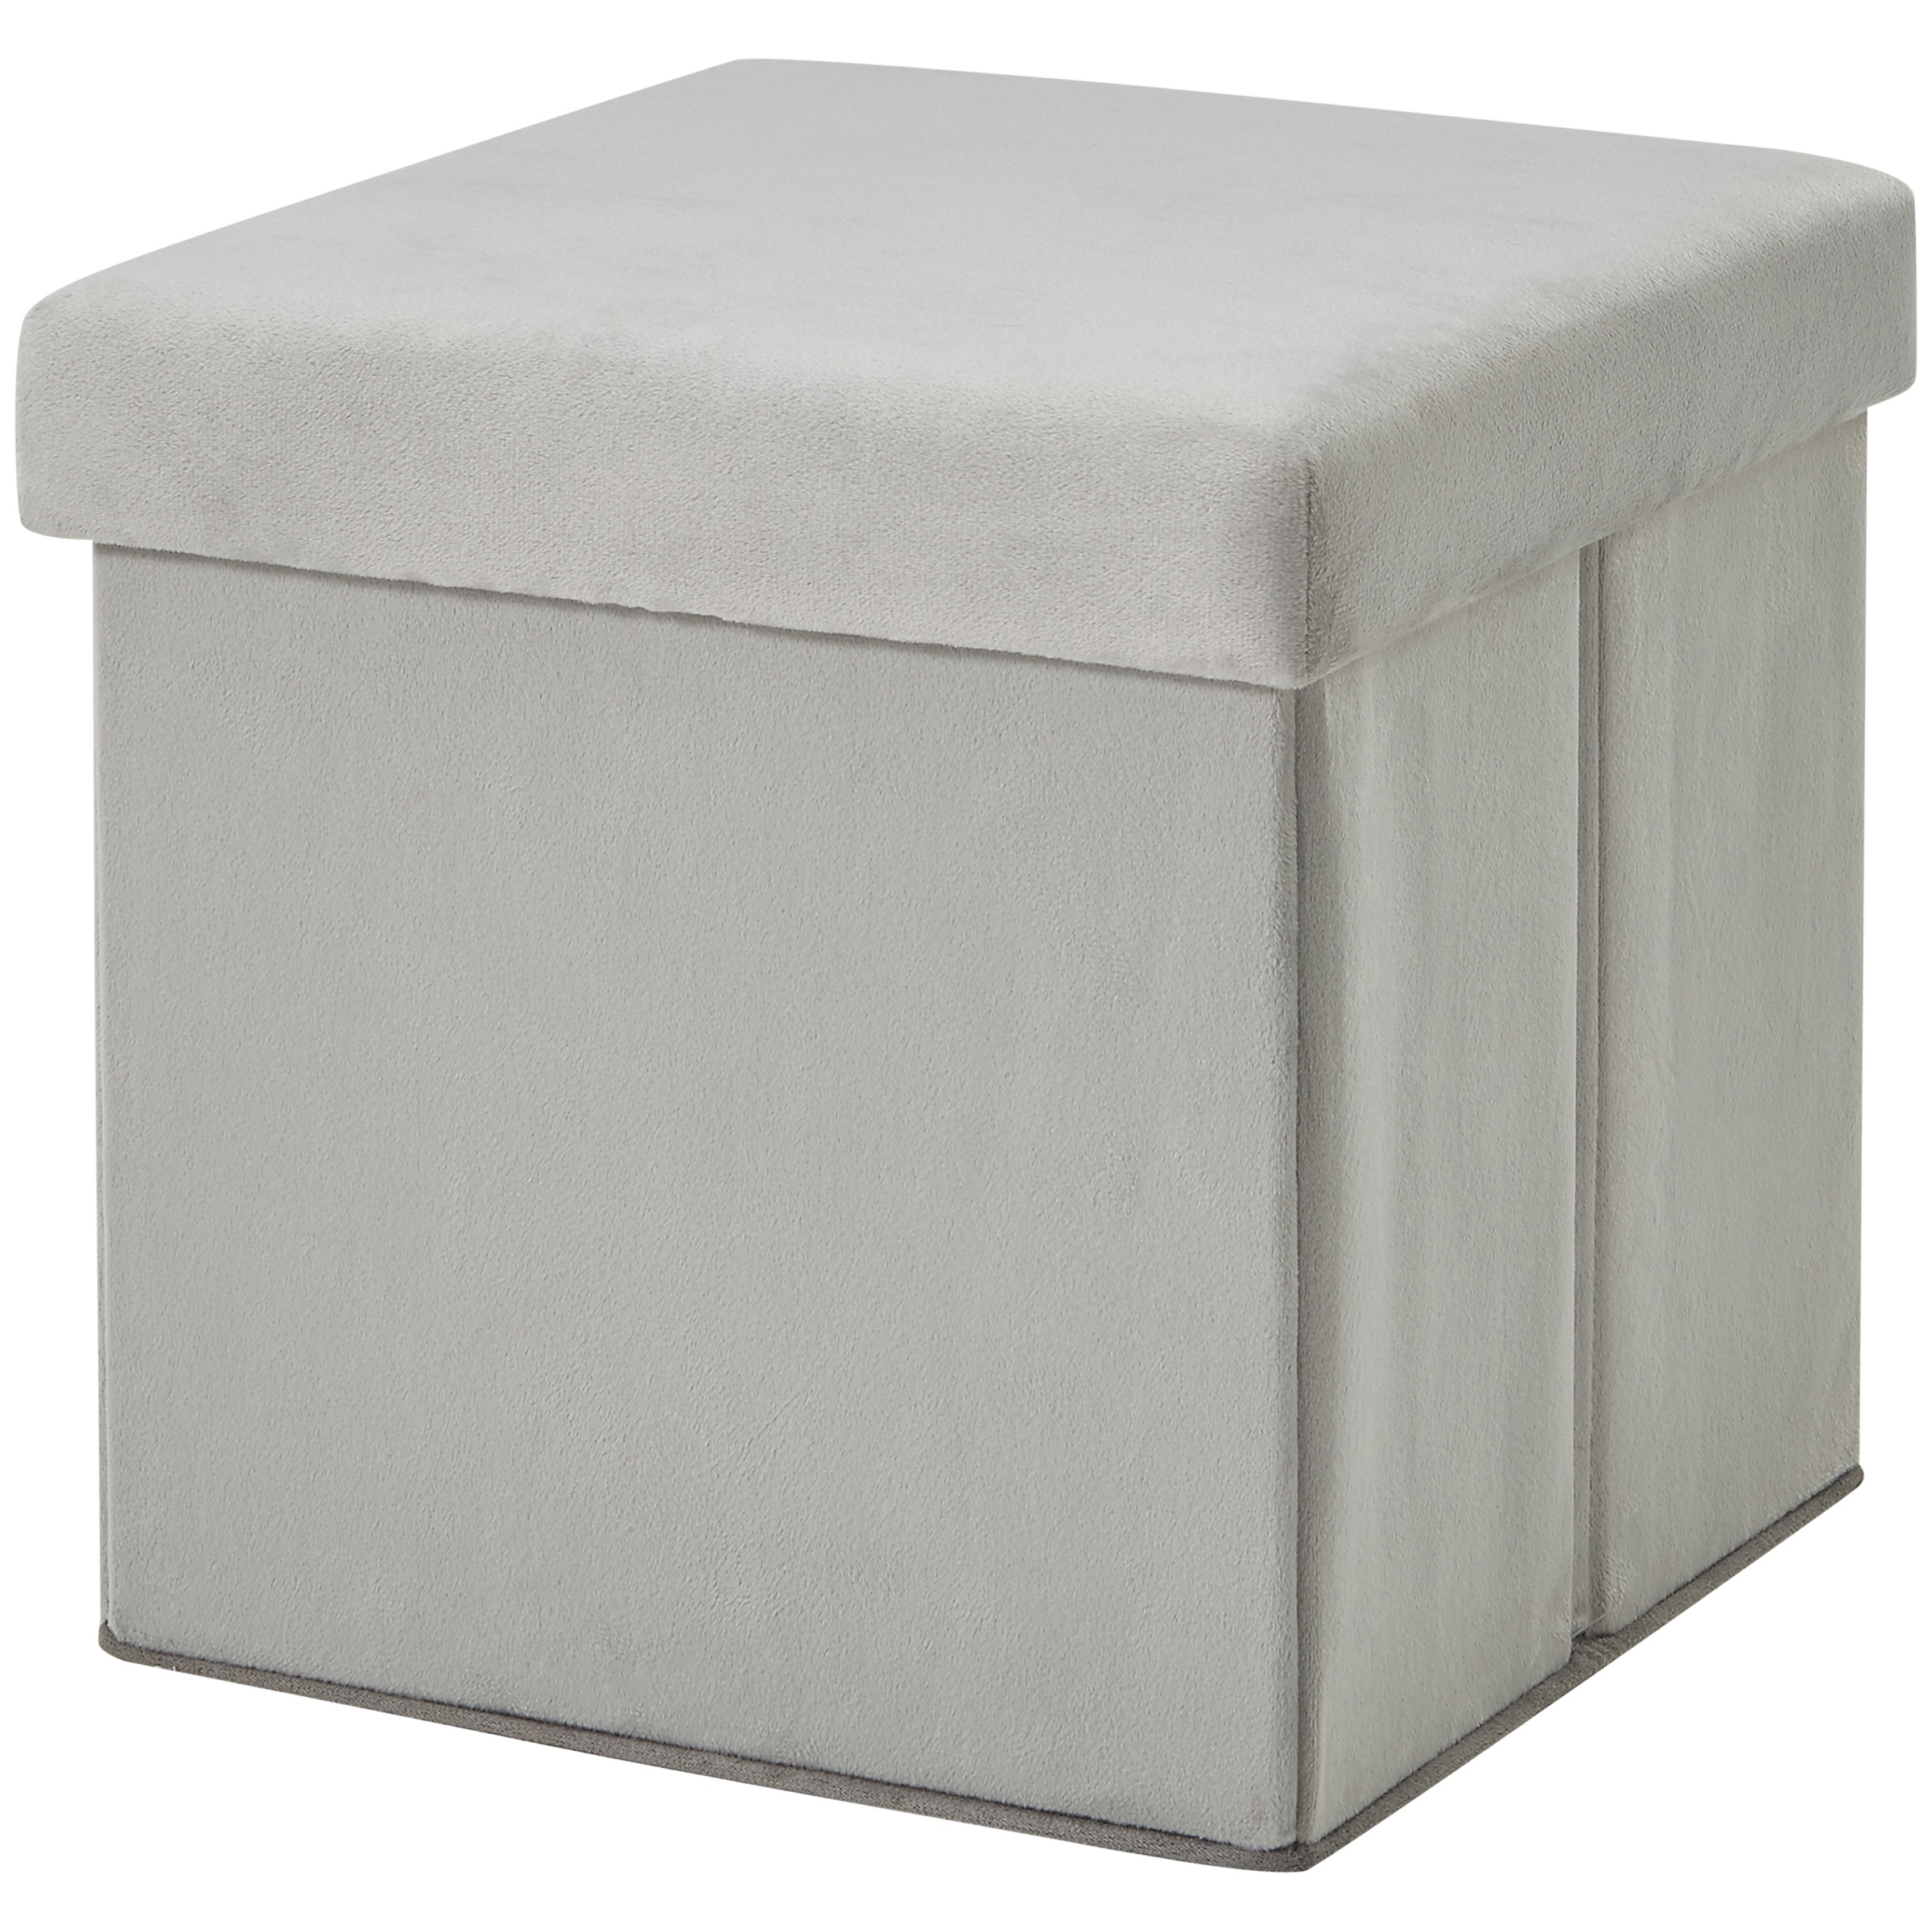 Mainstays Ultra Collapsible Storage Ottoman, Gray Faux Suede